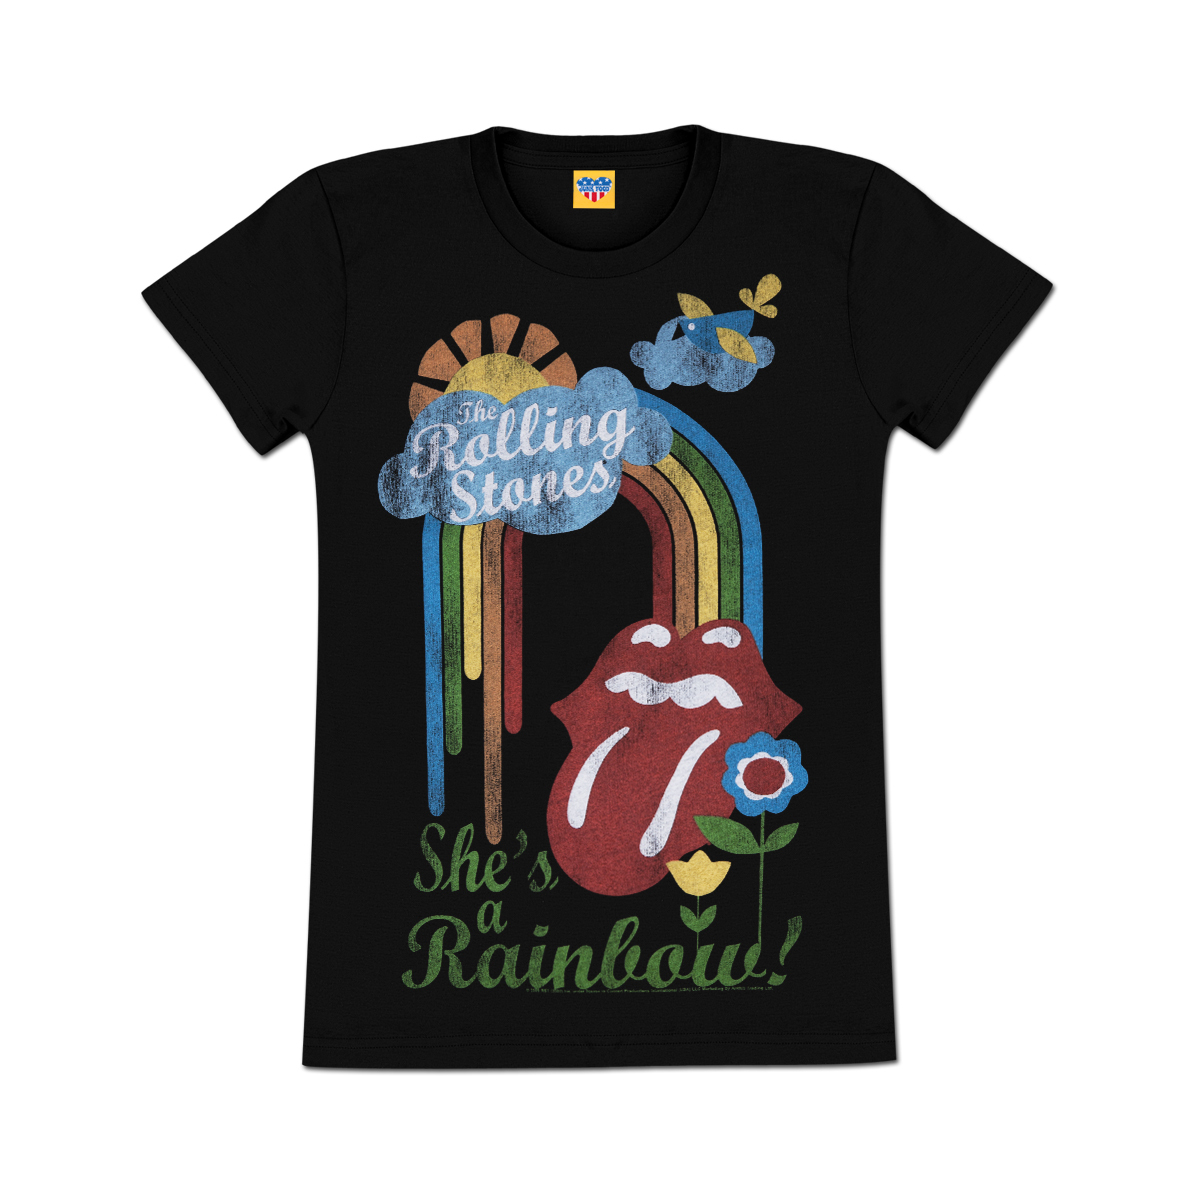 The rainbow clothing store